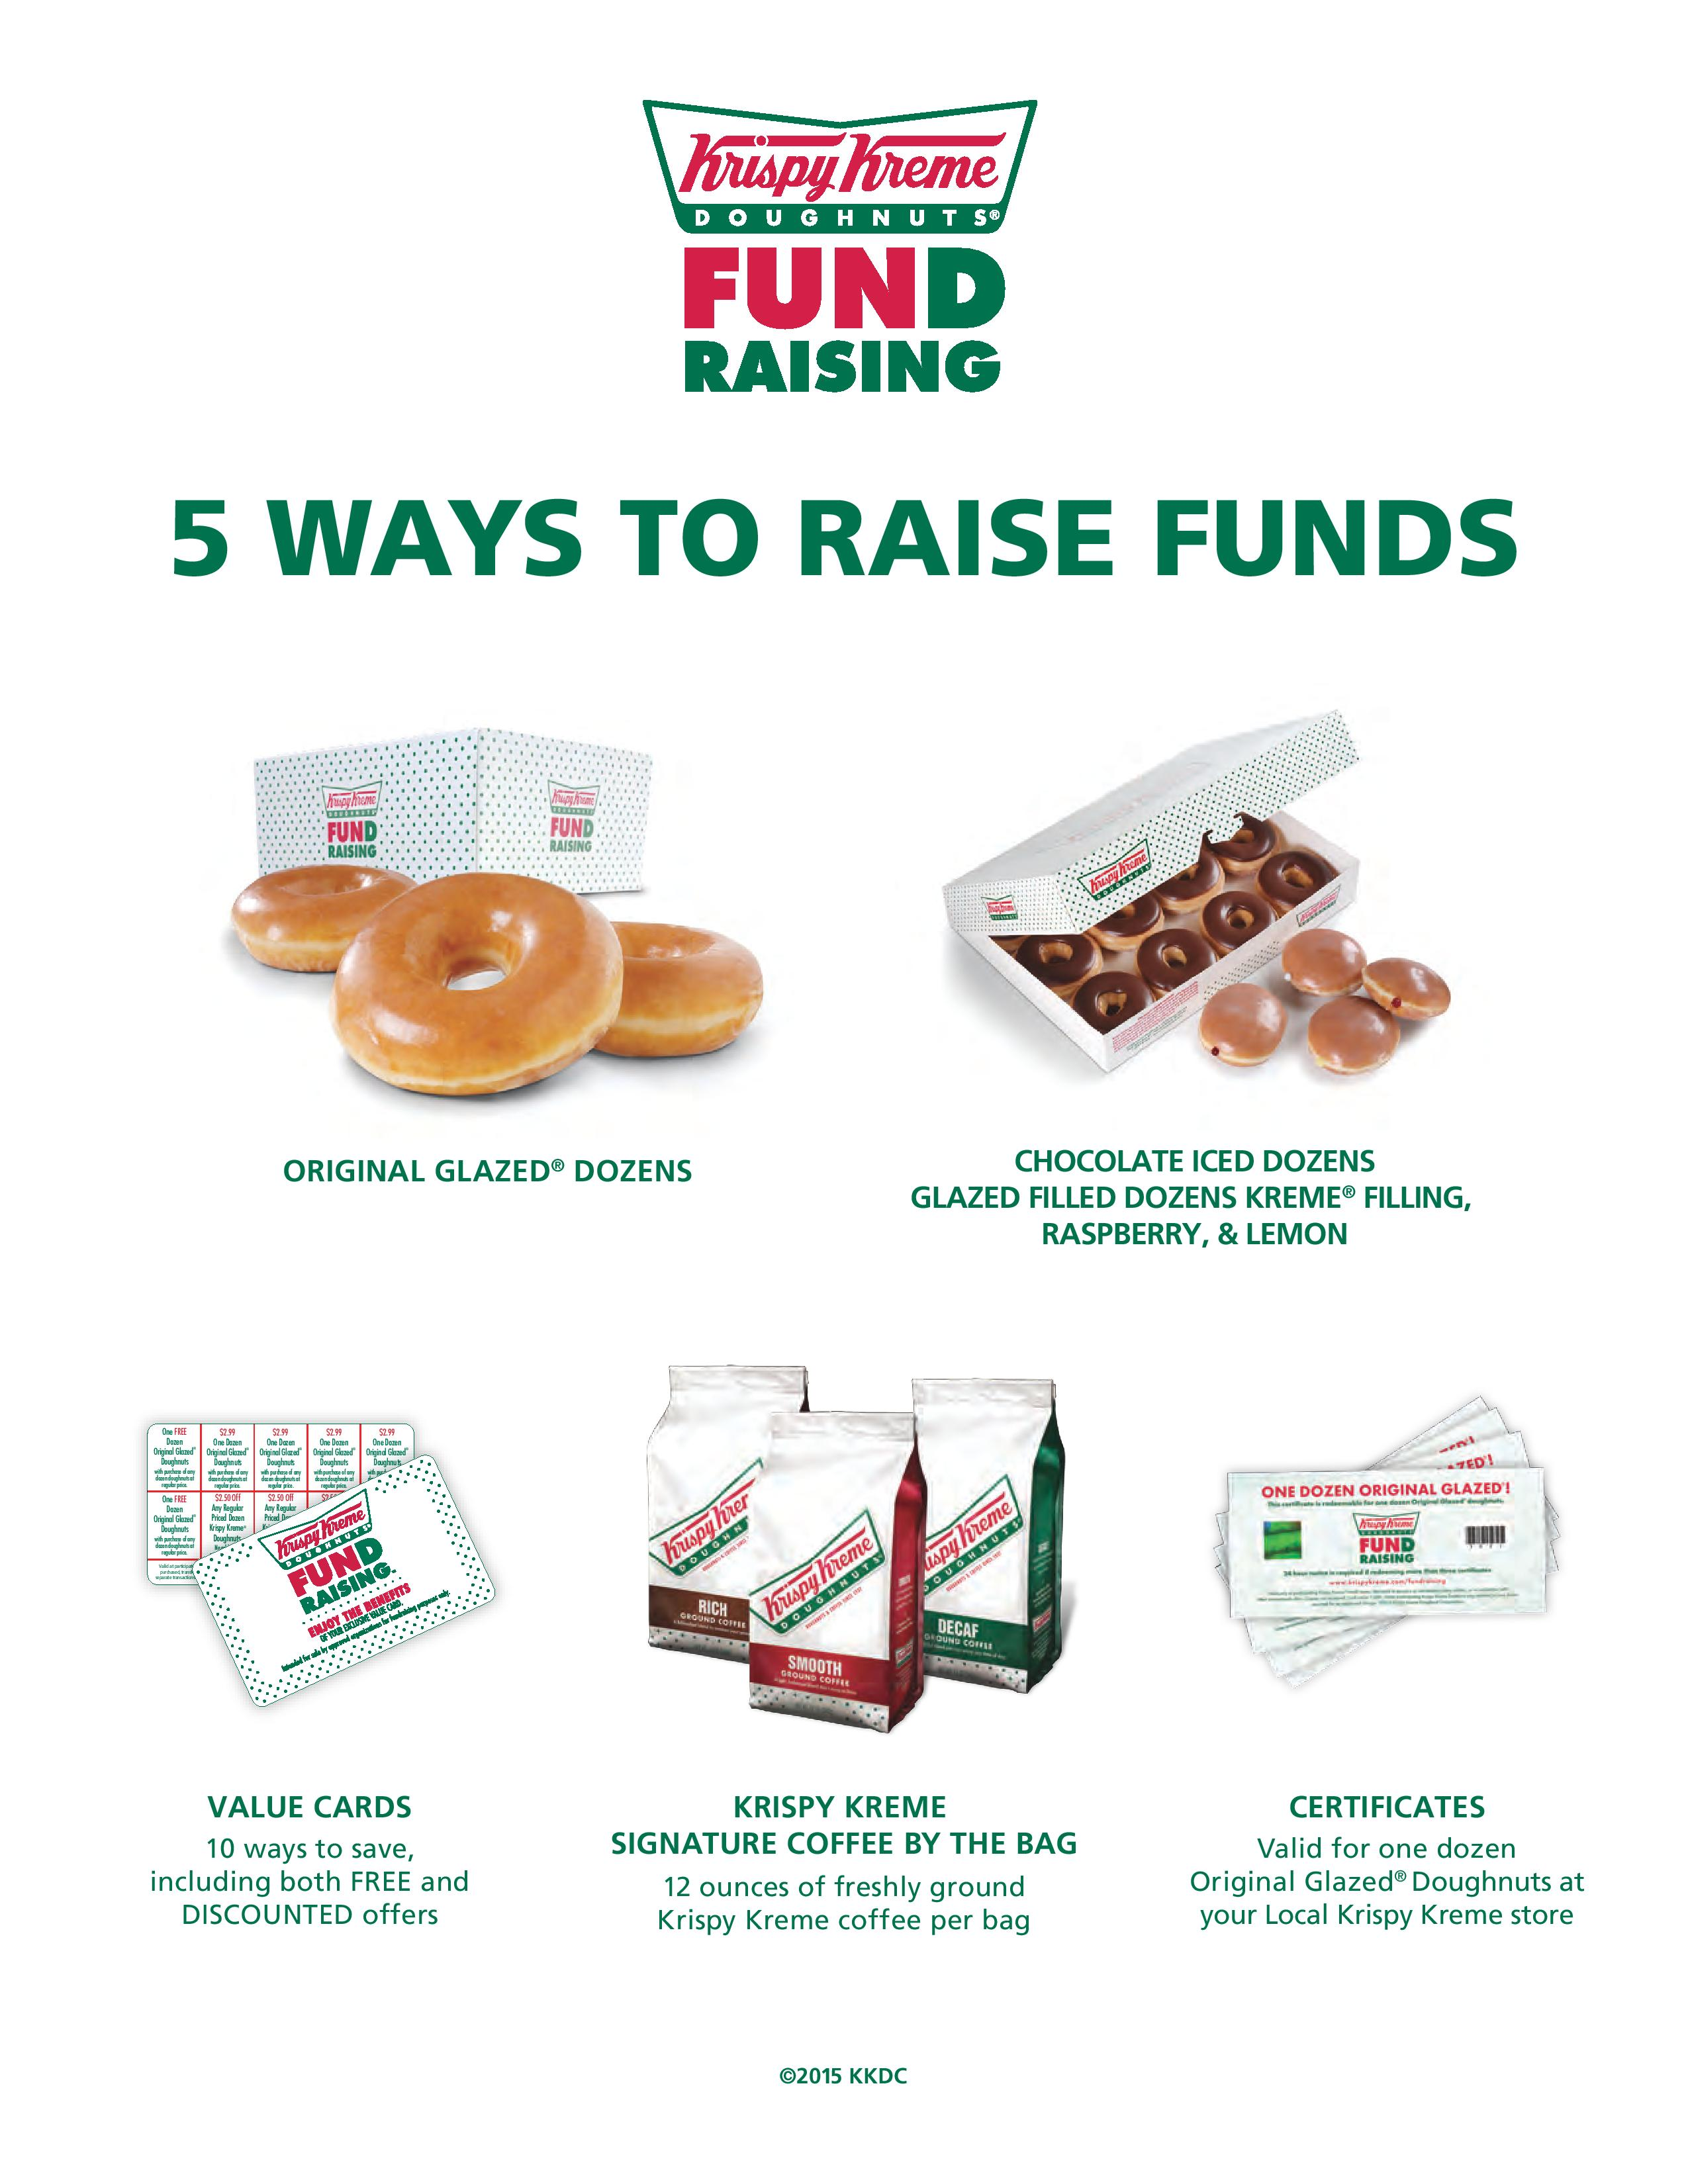 5 Ways to Fundraise